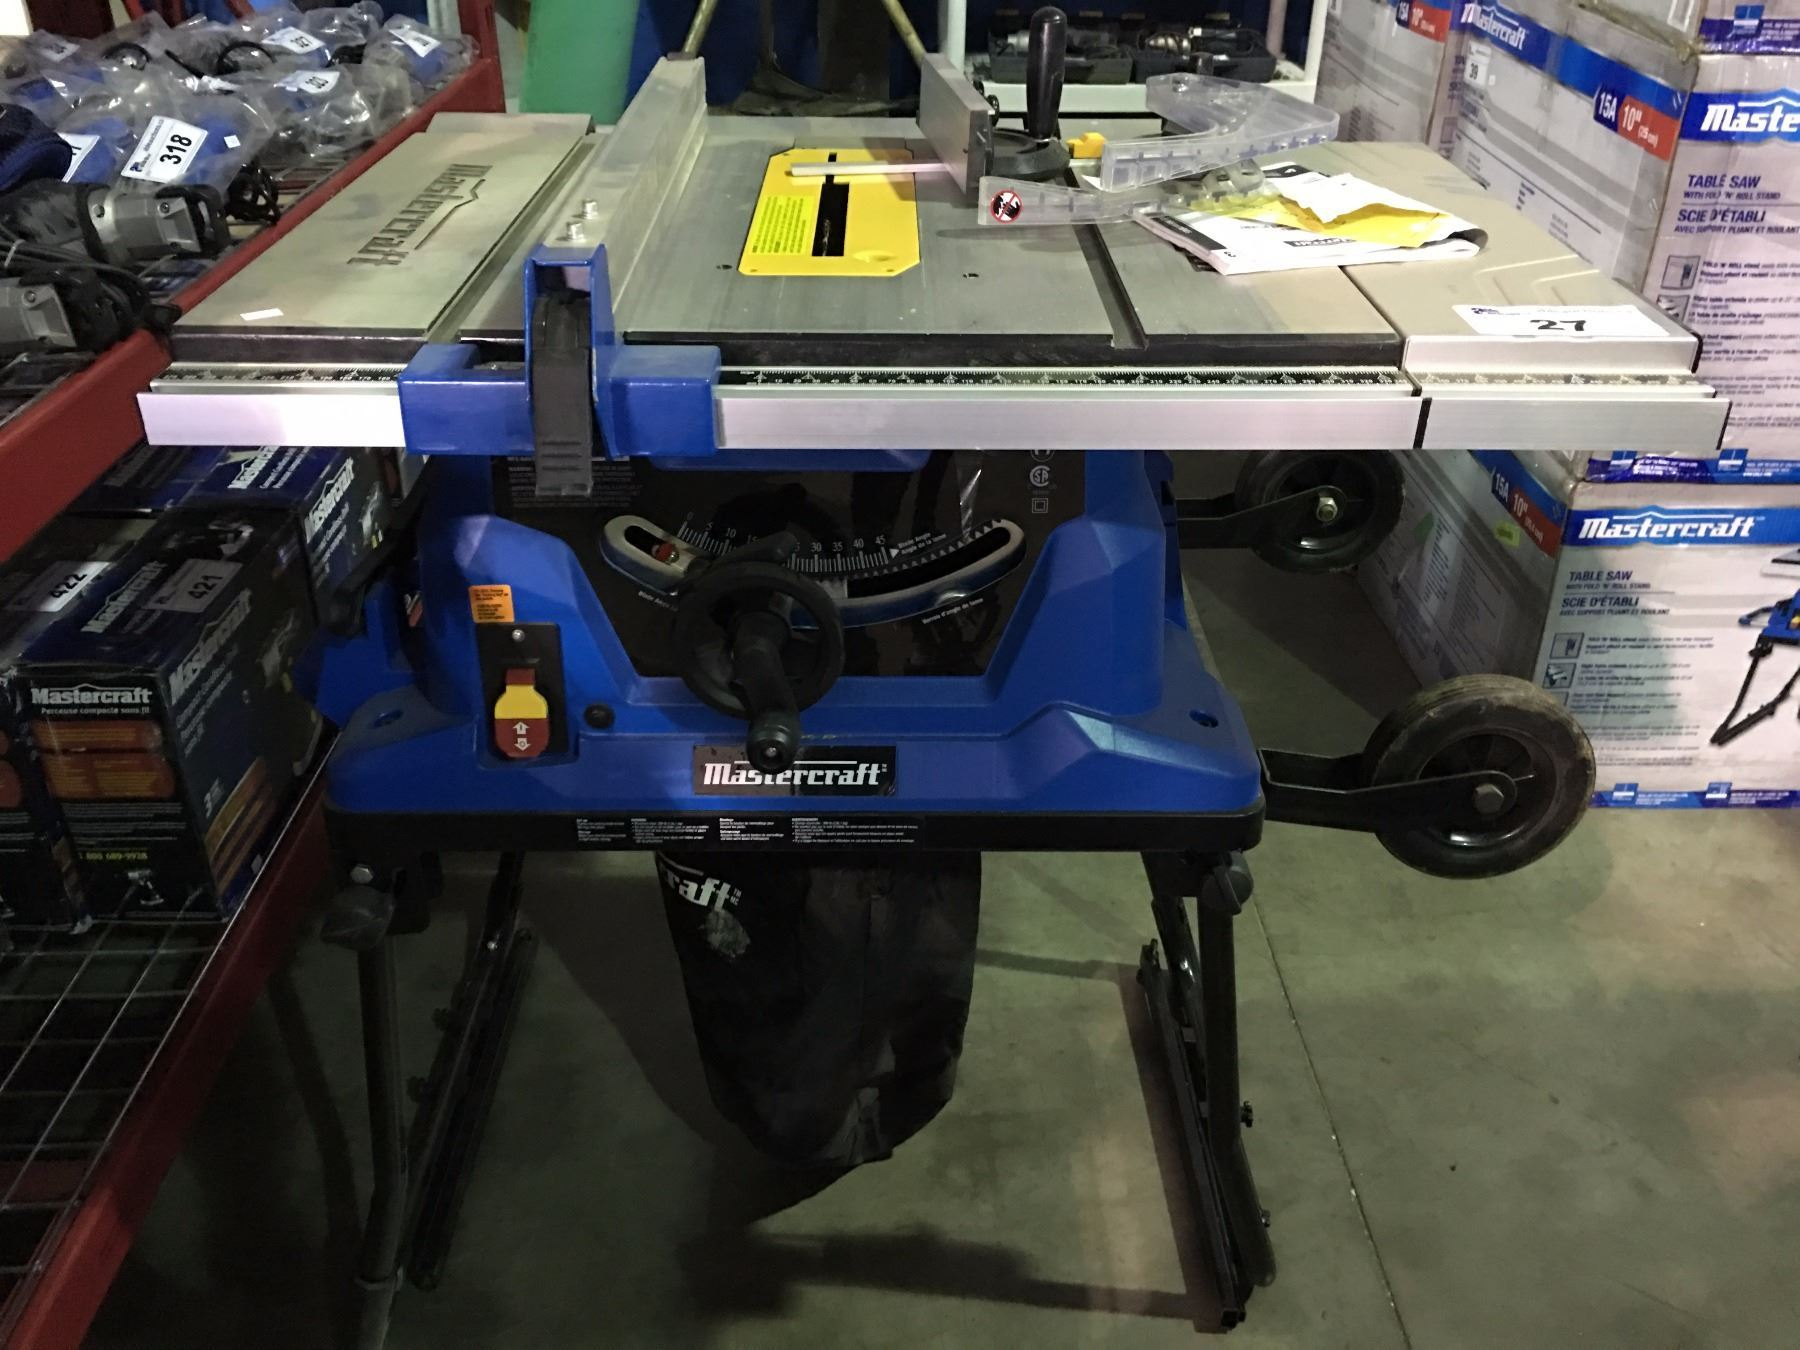 Mastercraft 1015amp table saw with fold roll stand image 1 mastercraft 1015amp table saw with fold roll stand keyboard keysfo Gallery